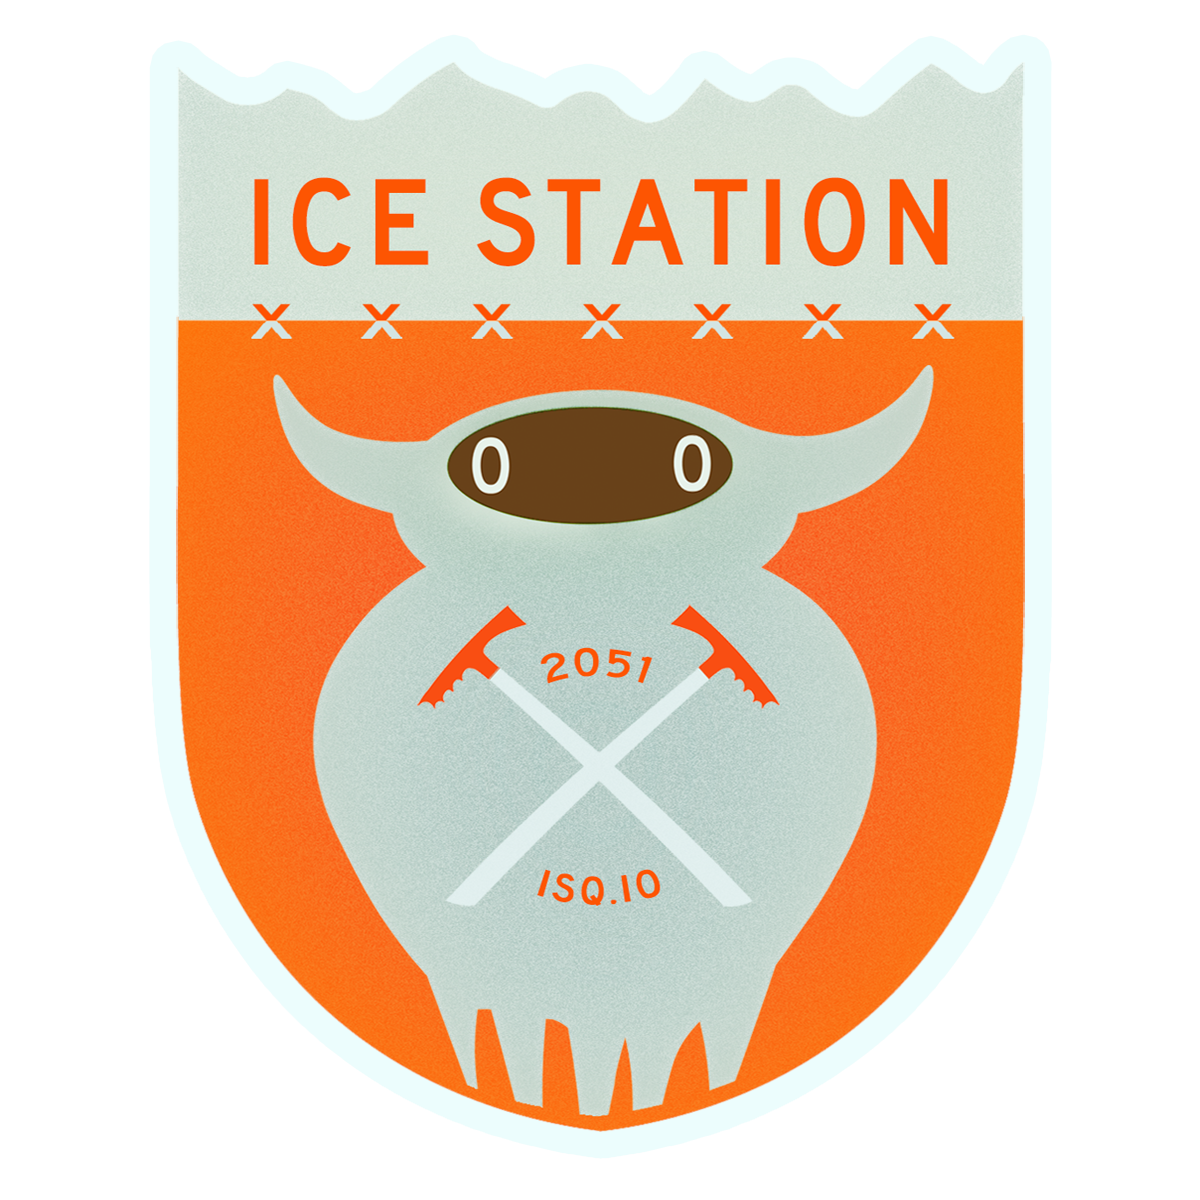 ICE STATION QUELLETTE